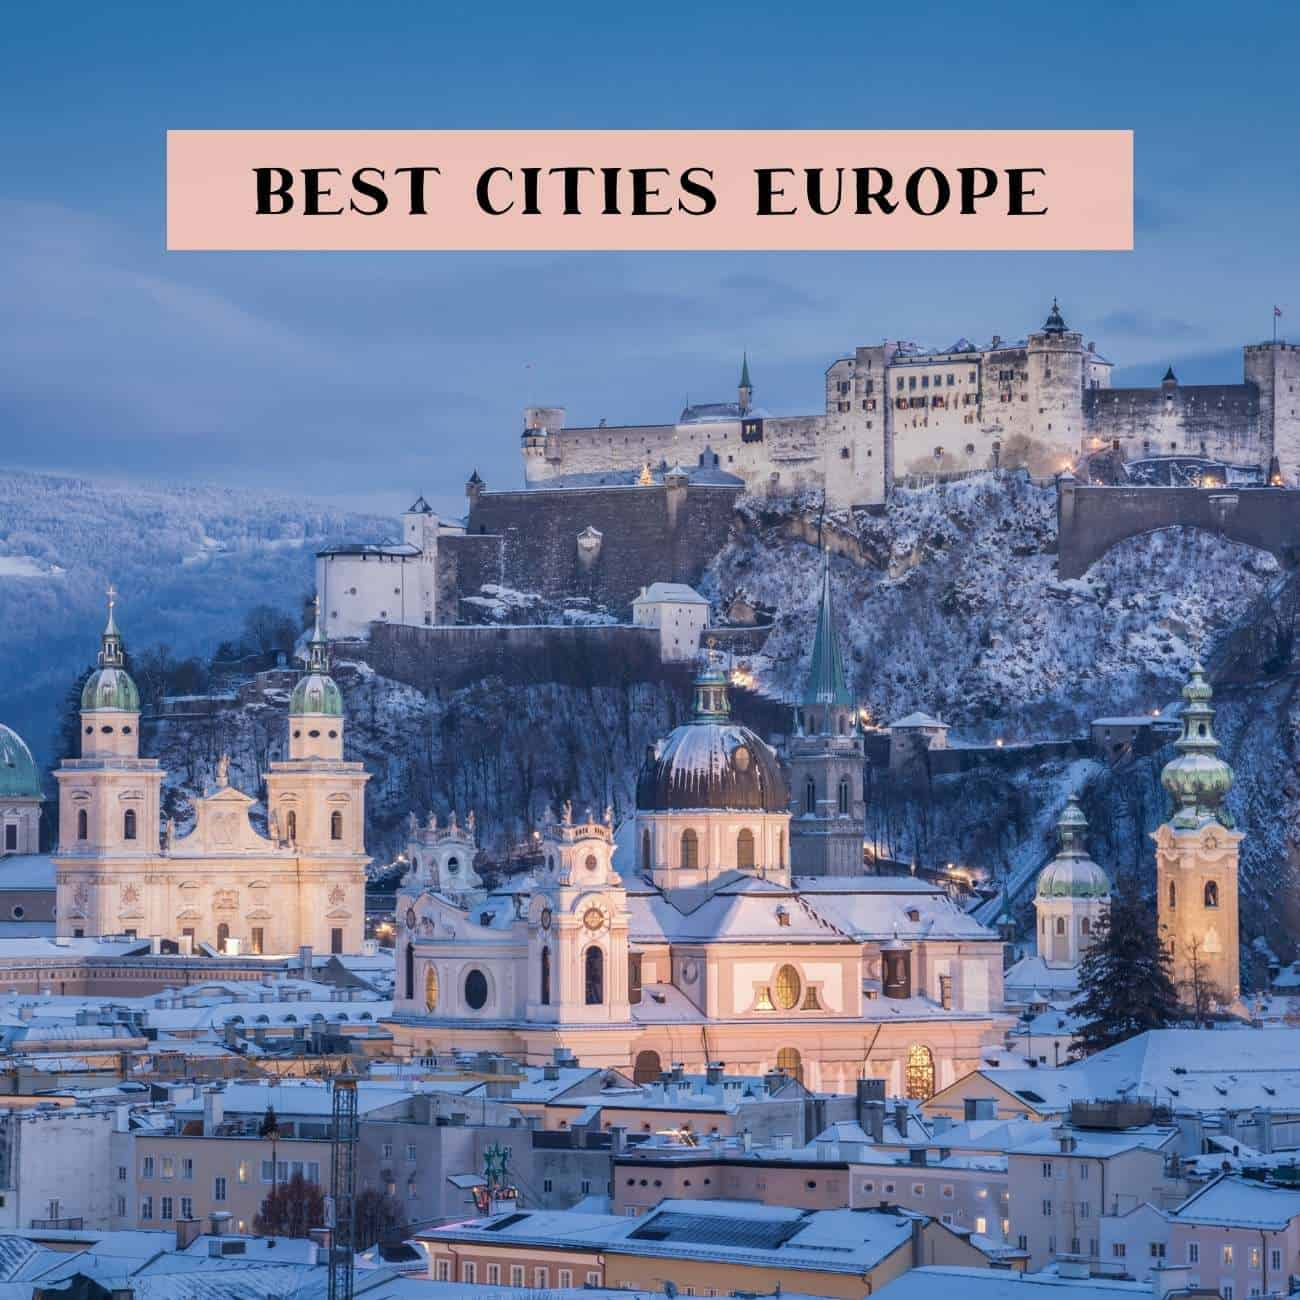 10 best cities Europe